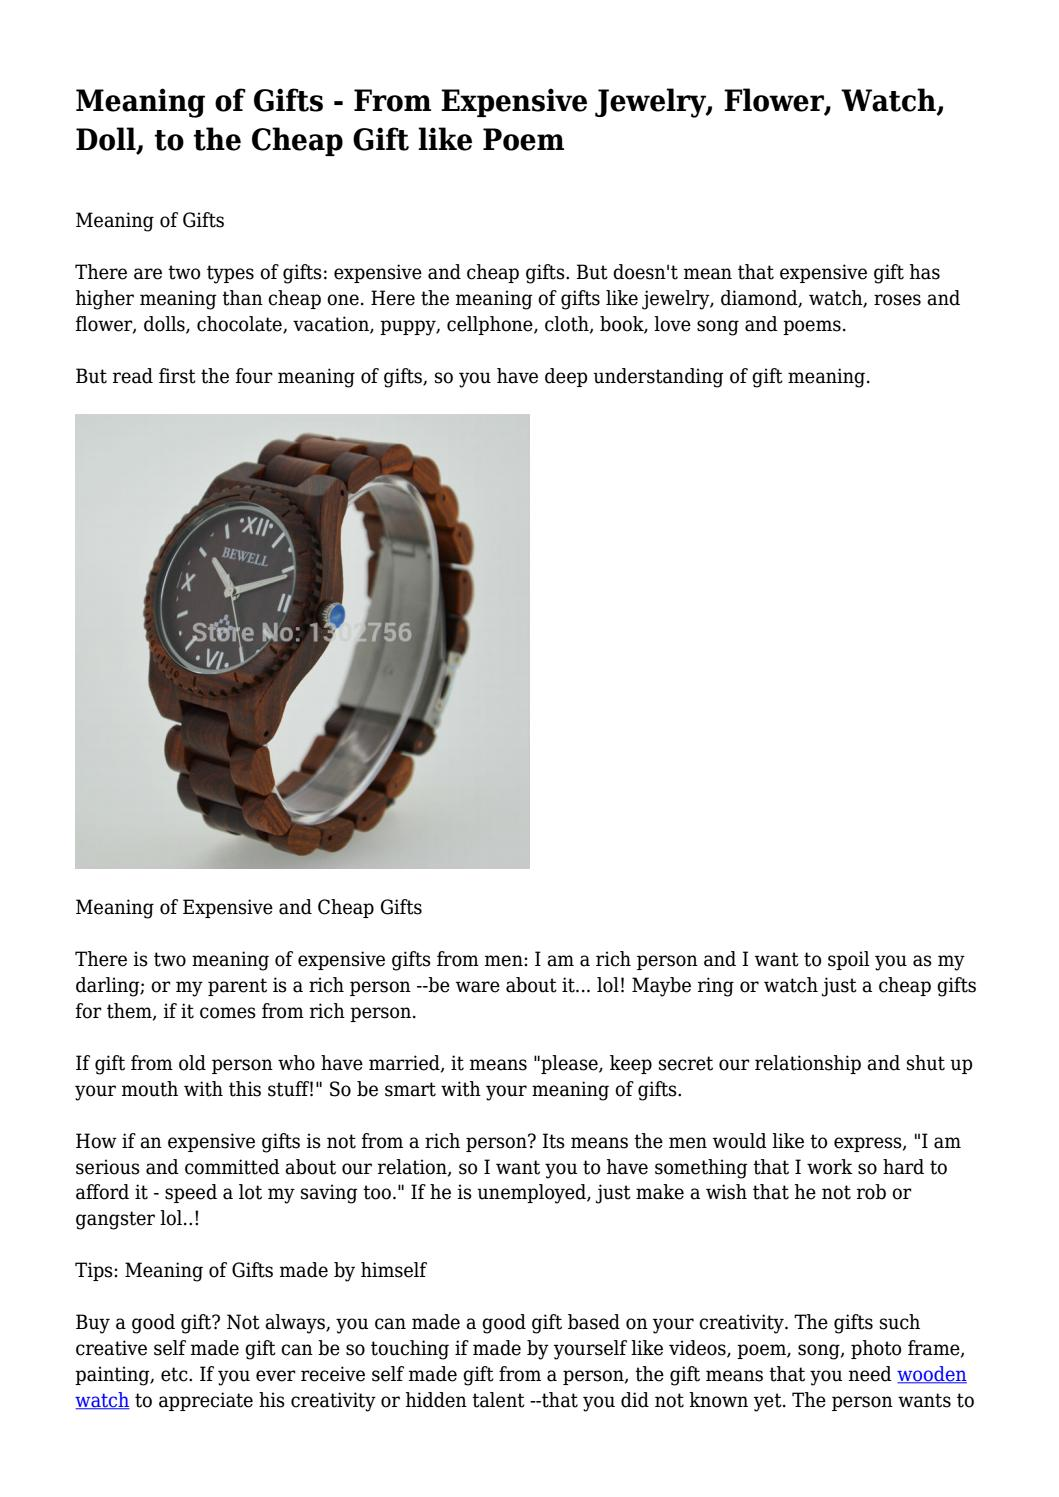 Meaning of gifts from expensive jewelry flower watch doll to meaning of gifts from expensive jewelry flower watch doll to the cheap gift like poem by quickvegetable210 issuu solutioingenieria Image collections